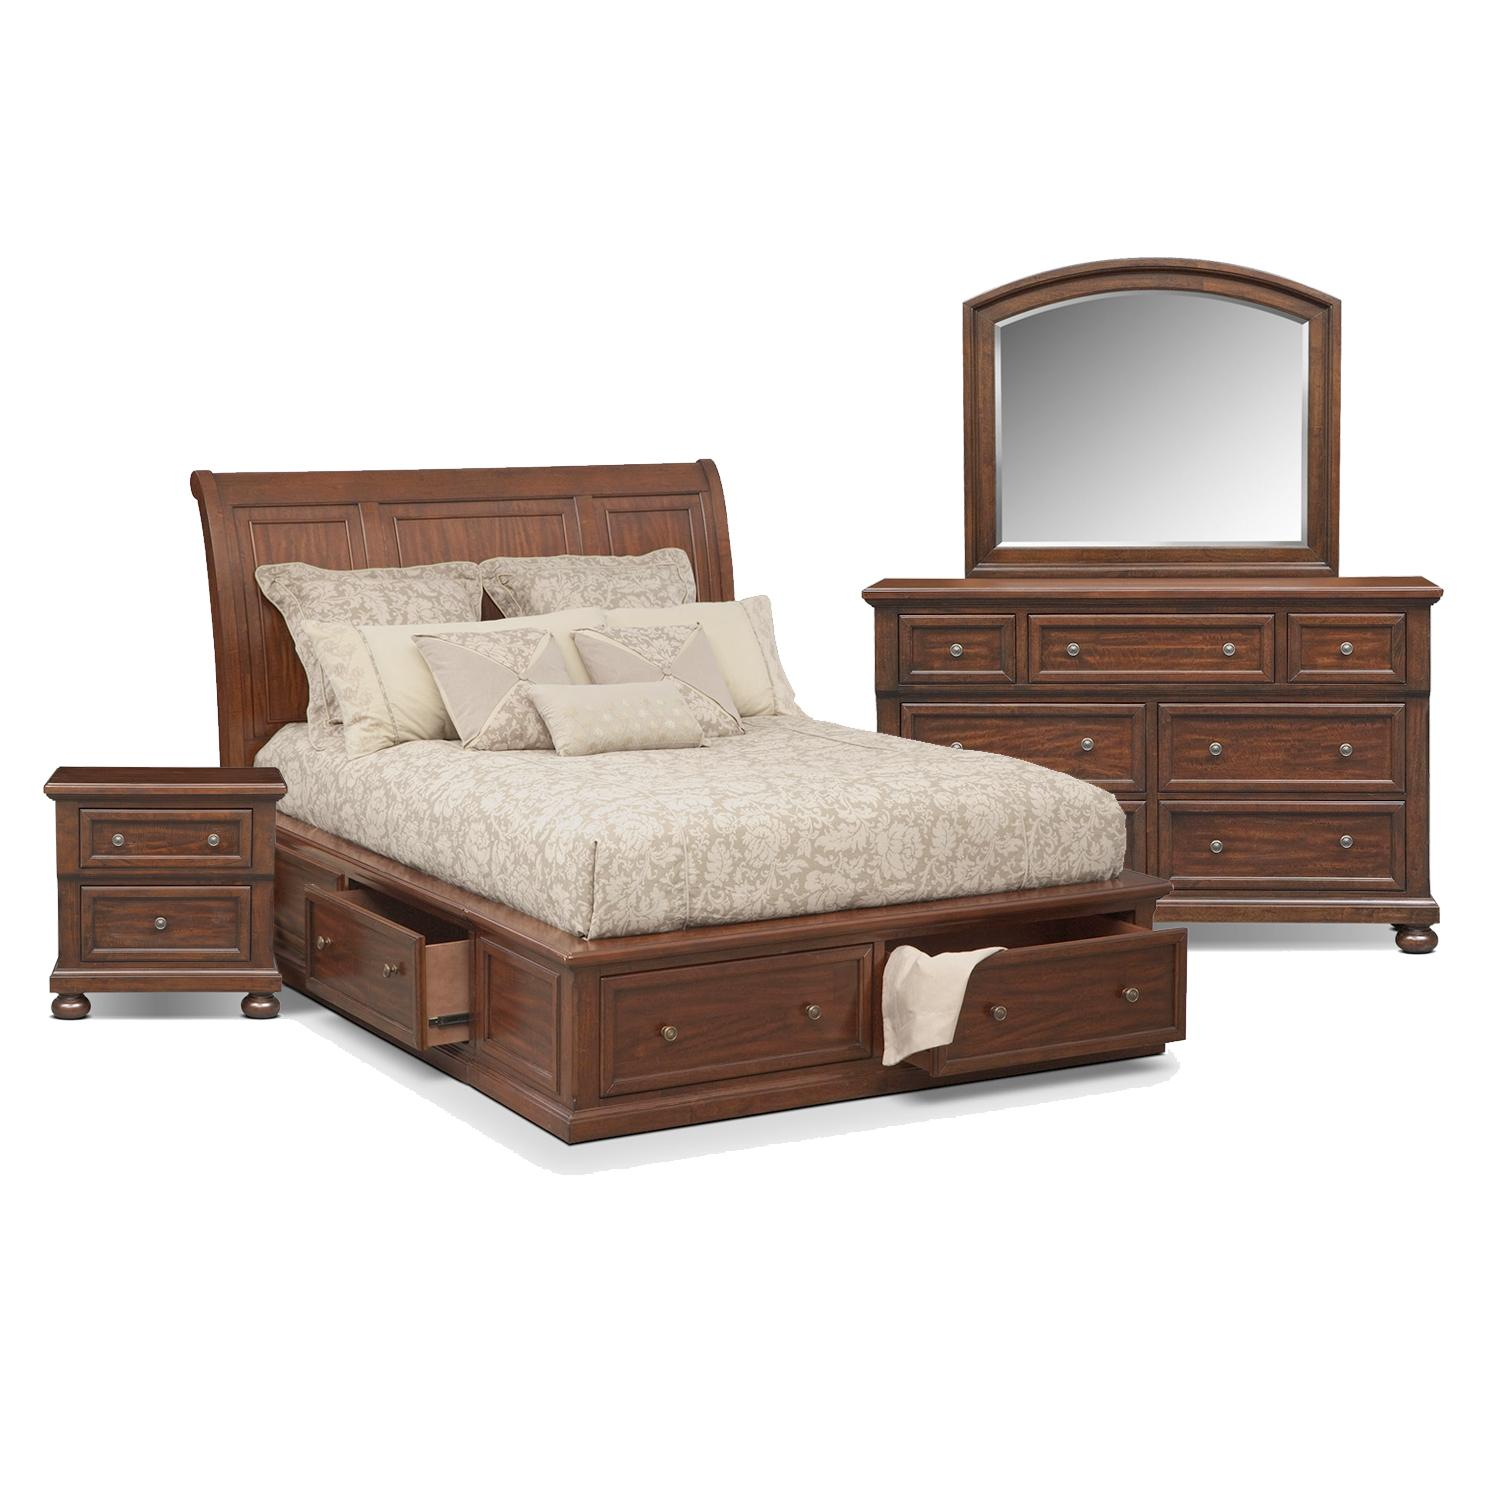 Bedroom furniture value city furniture for Bed and bedroom furniture sets